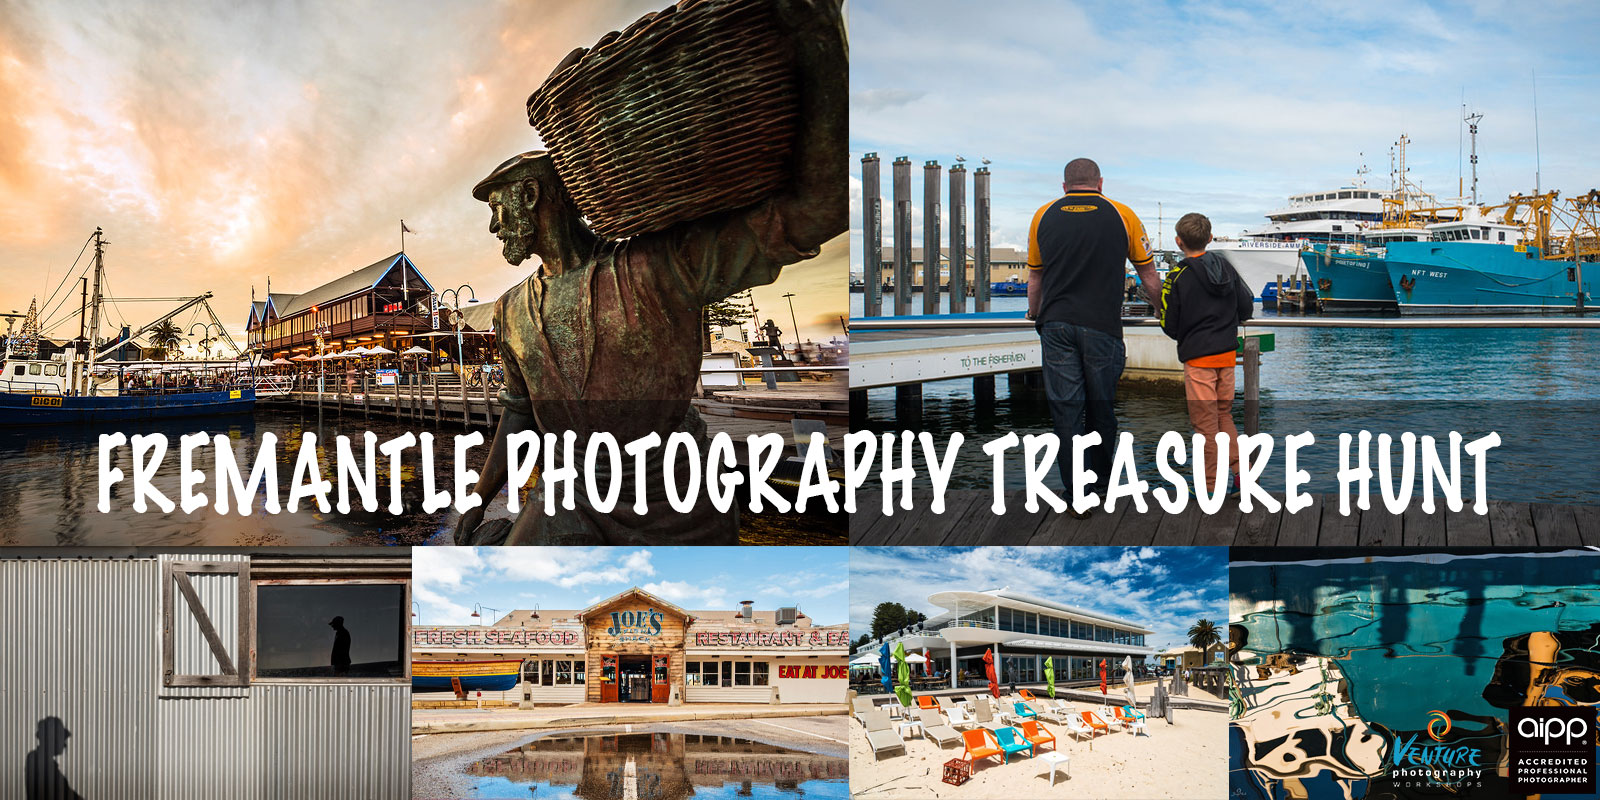 Fremantle Photography Treasure Hunt